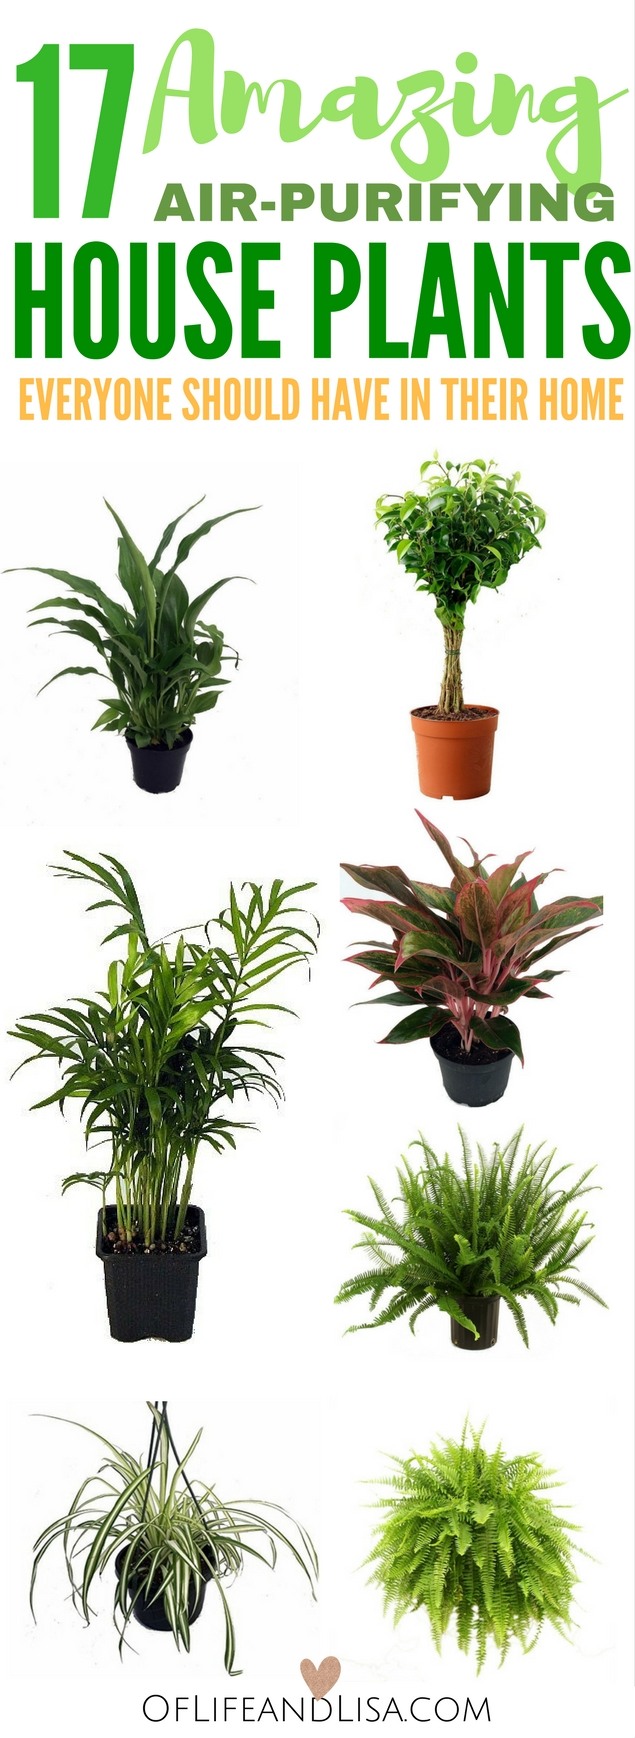 Air Purifying Plants For Bedroom: Purifying-house-plants